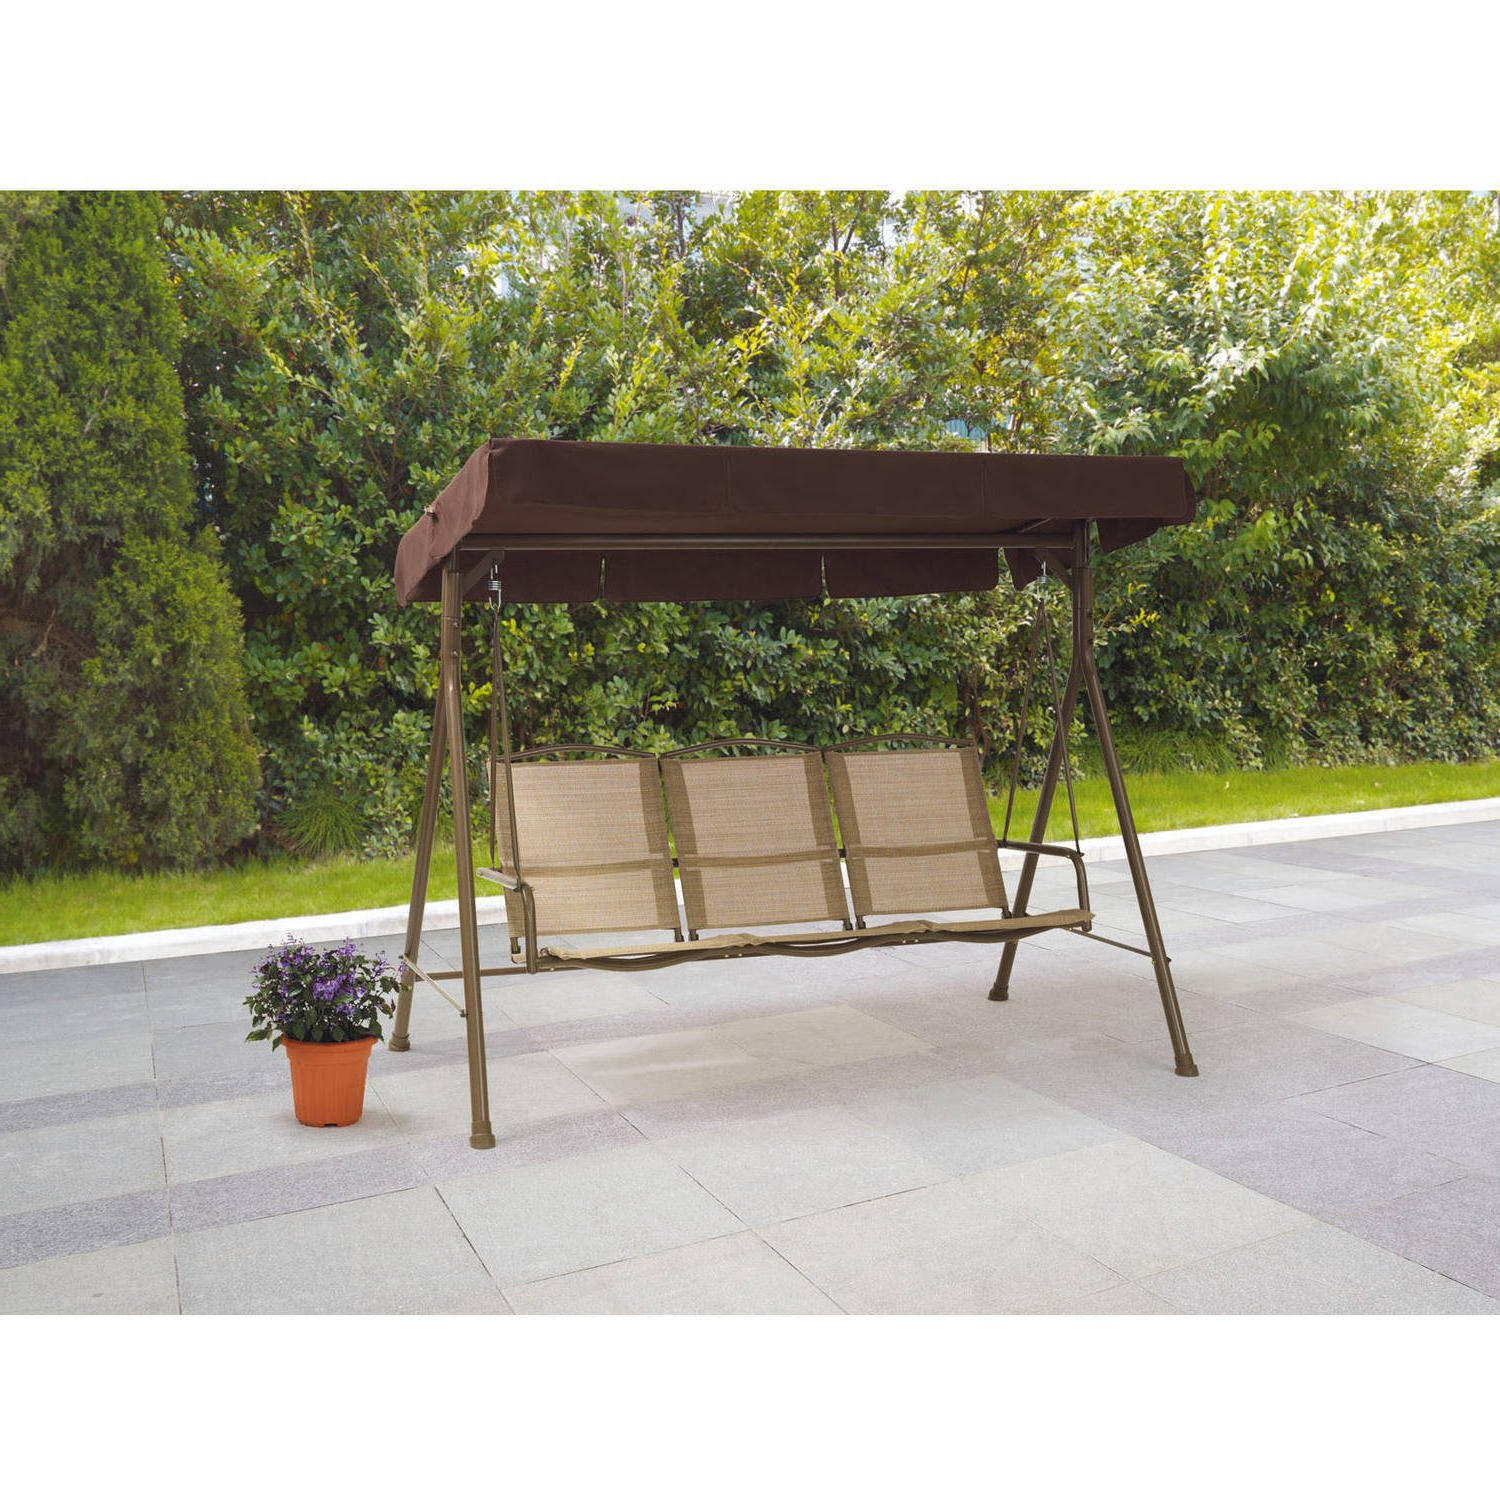 Current Amazon : Mainstays Sand Dune 3 Seat Sling Porch & Patio With Regard To Patio Gazebo Porch Swings (Gallery 20 of 30)